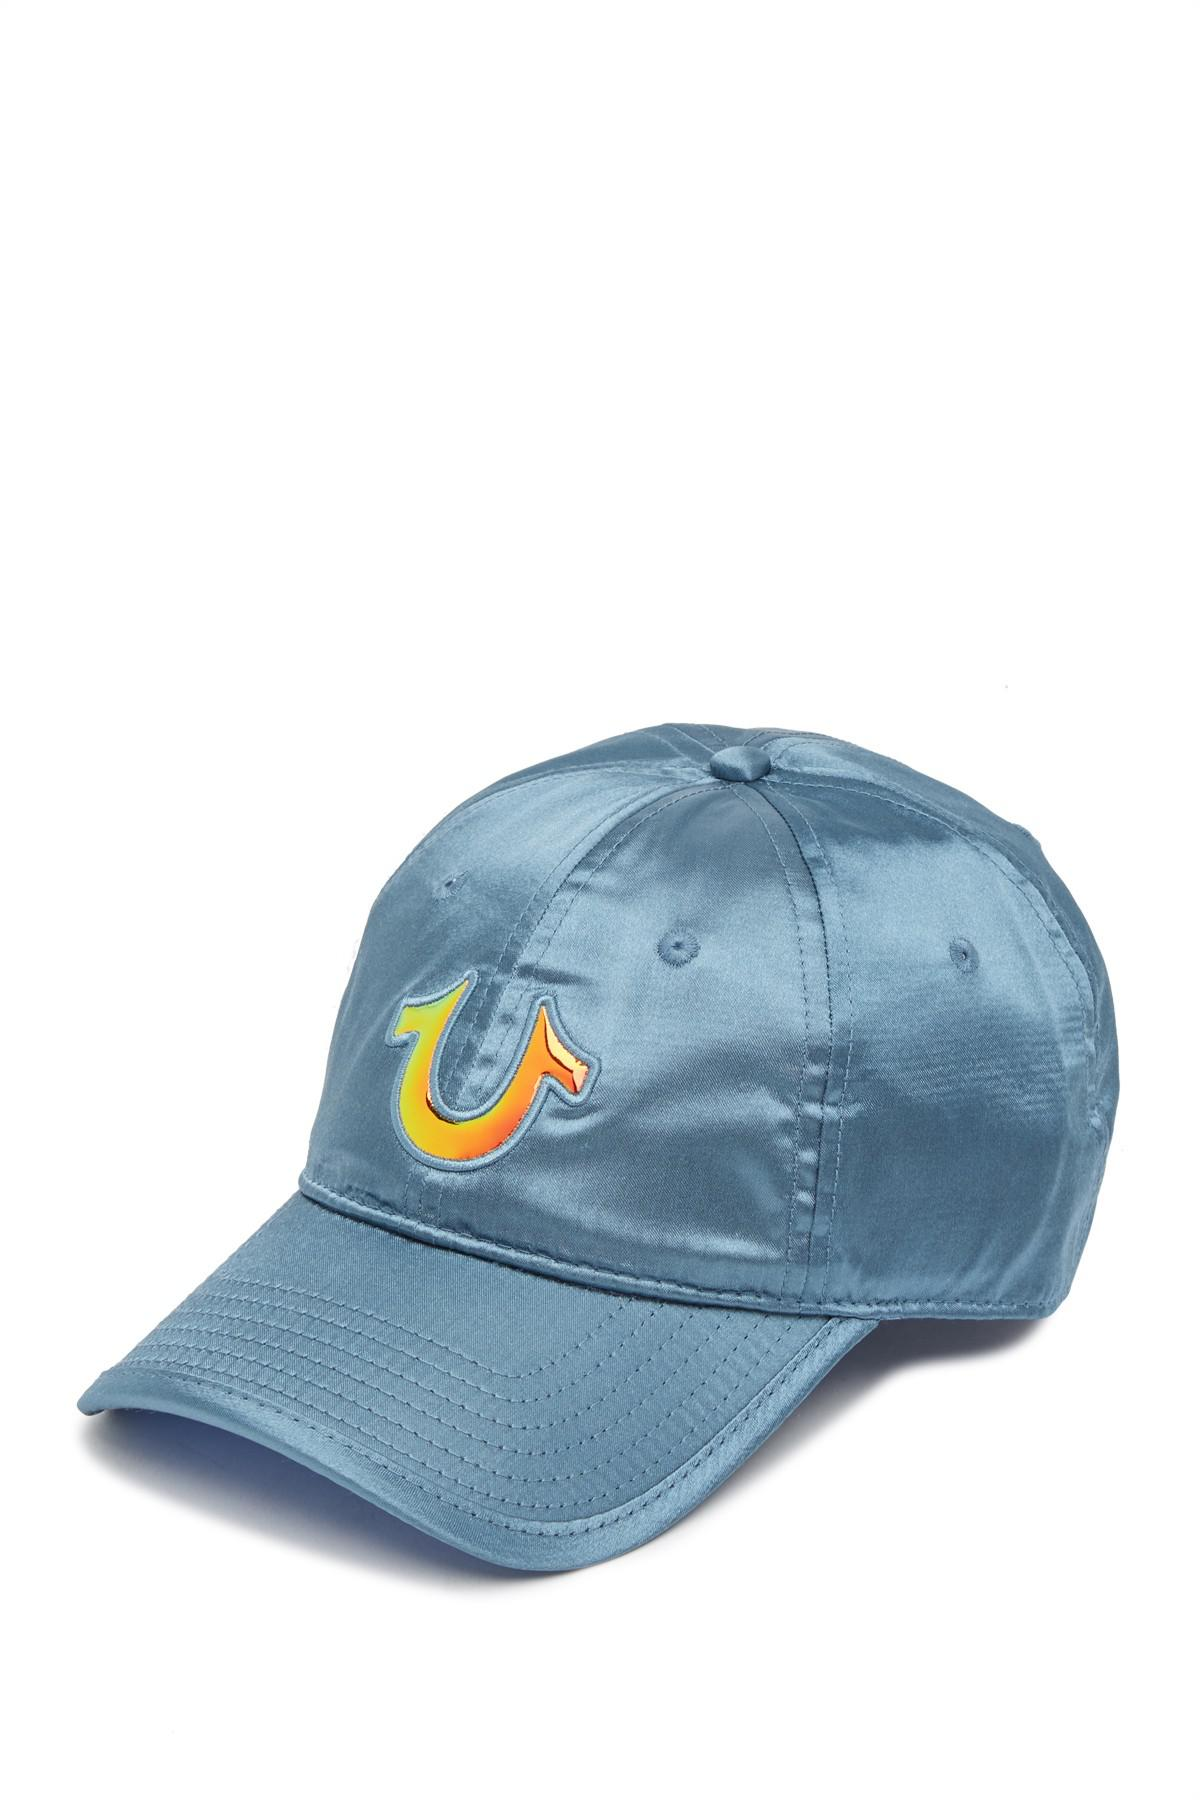 21e43043ba804 Lyst - True Religion Satin Baseball Cap in Blue for Men